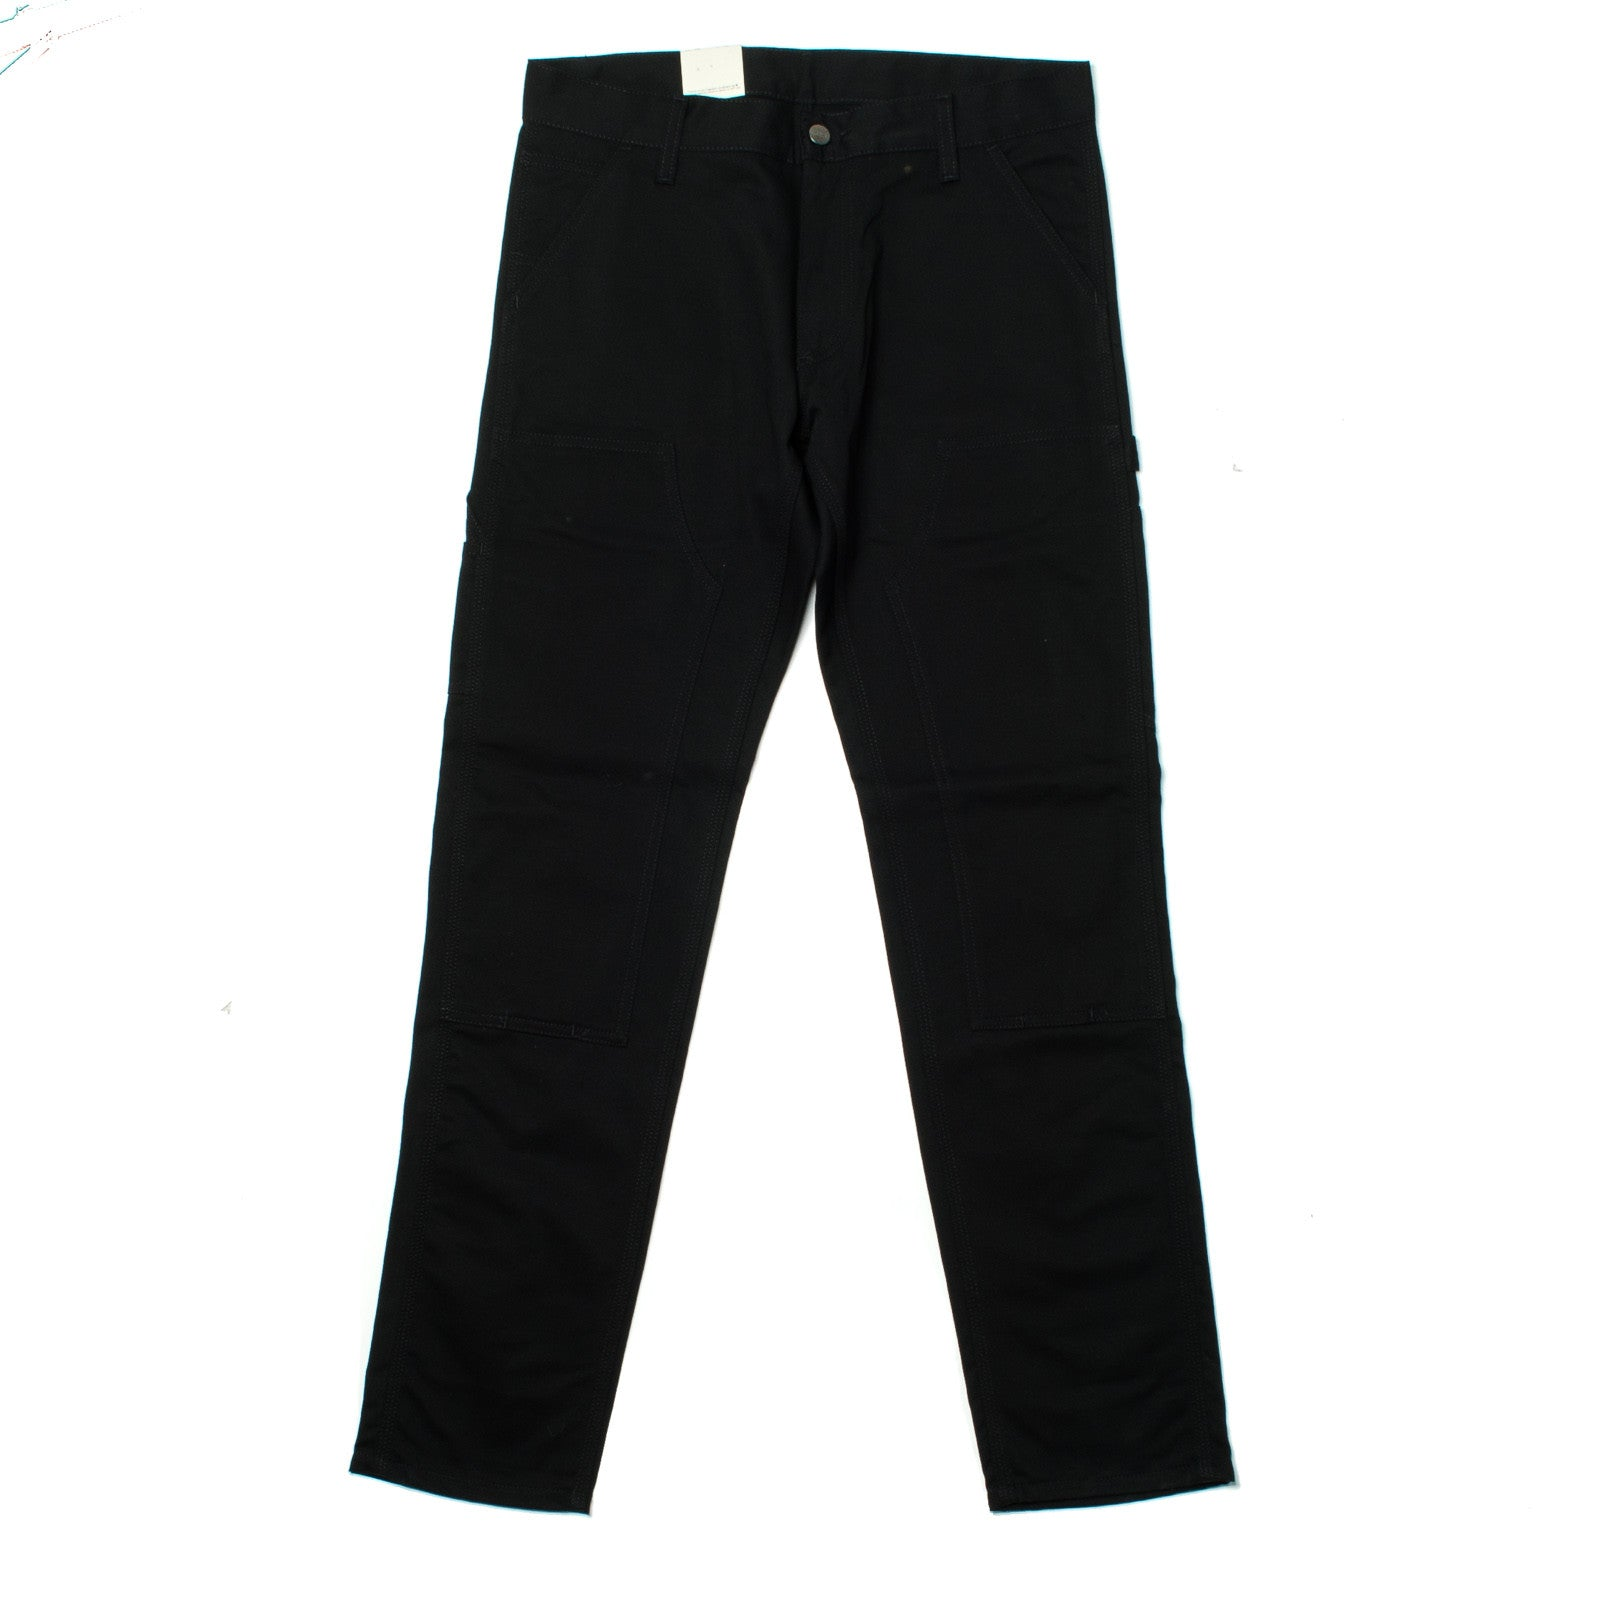 Lincoln Double Knee Pant Black Rigid